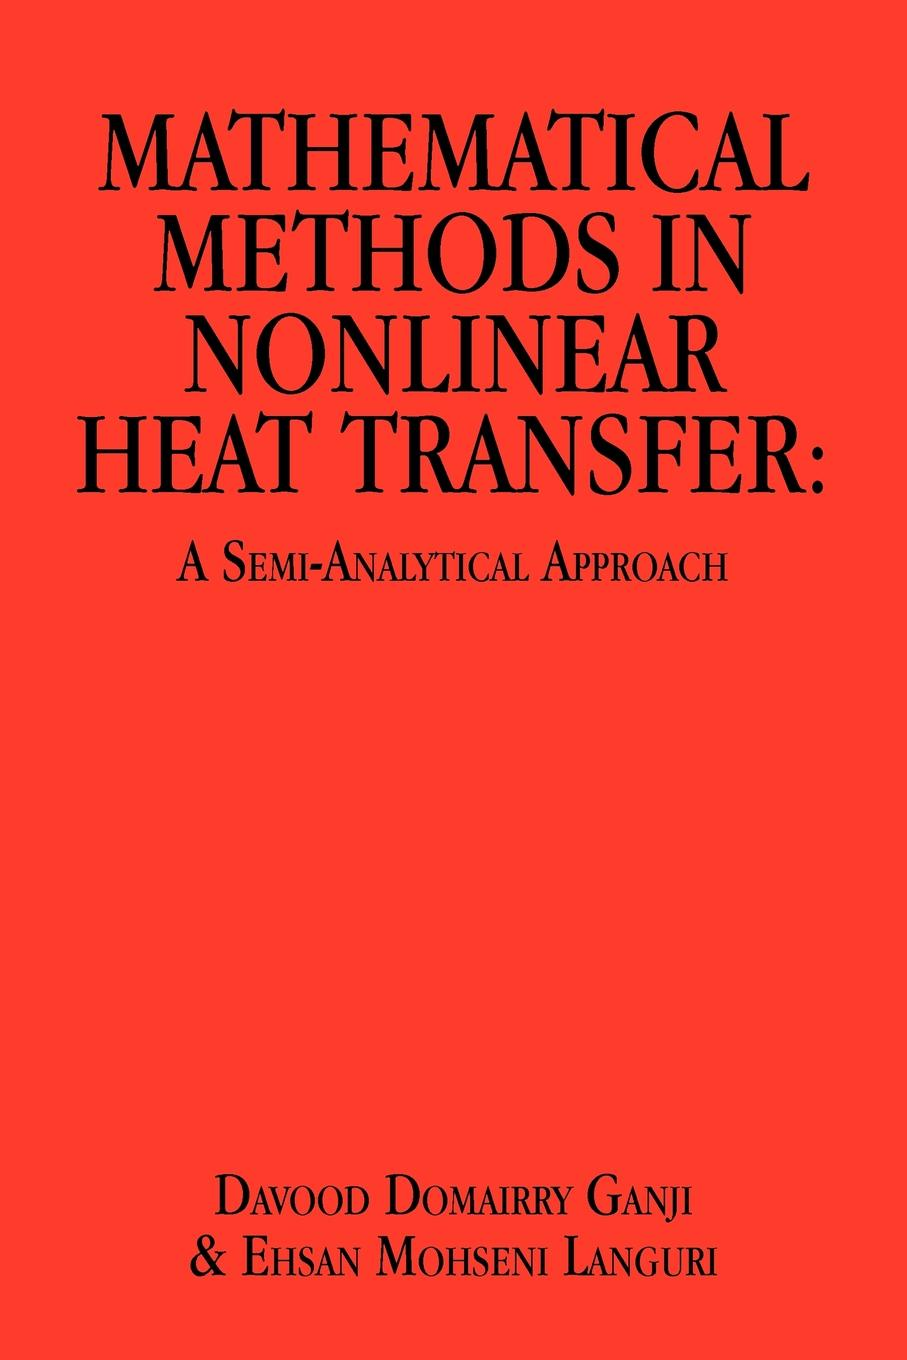 Фото - Davood Domairry Ganji Mathematical Methods in Nonlinear Heat Transfer. A Semi-Analytical Approach 2pcs heat press machine silicone pad mat 50x70x1cm high temperature resistant for heat transfer sublimation